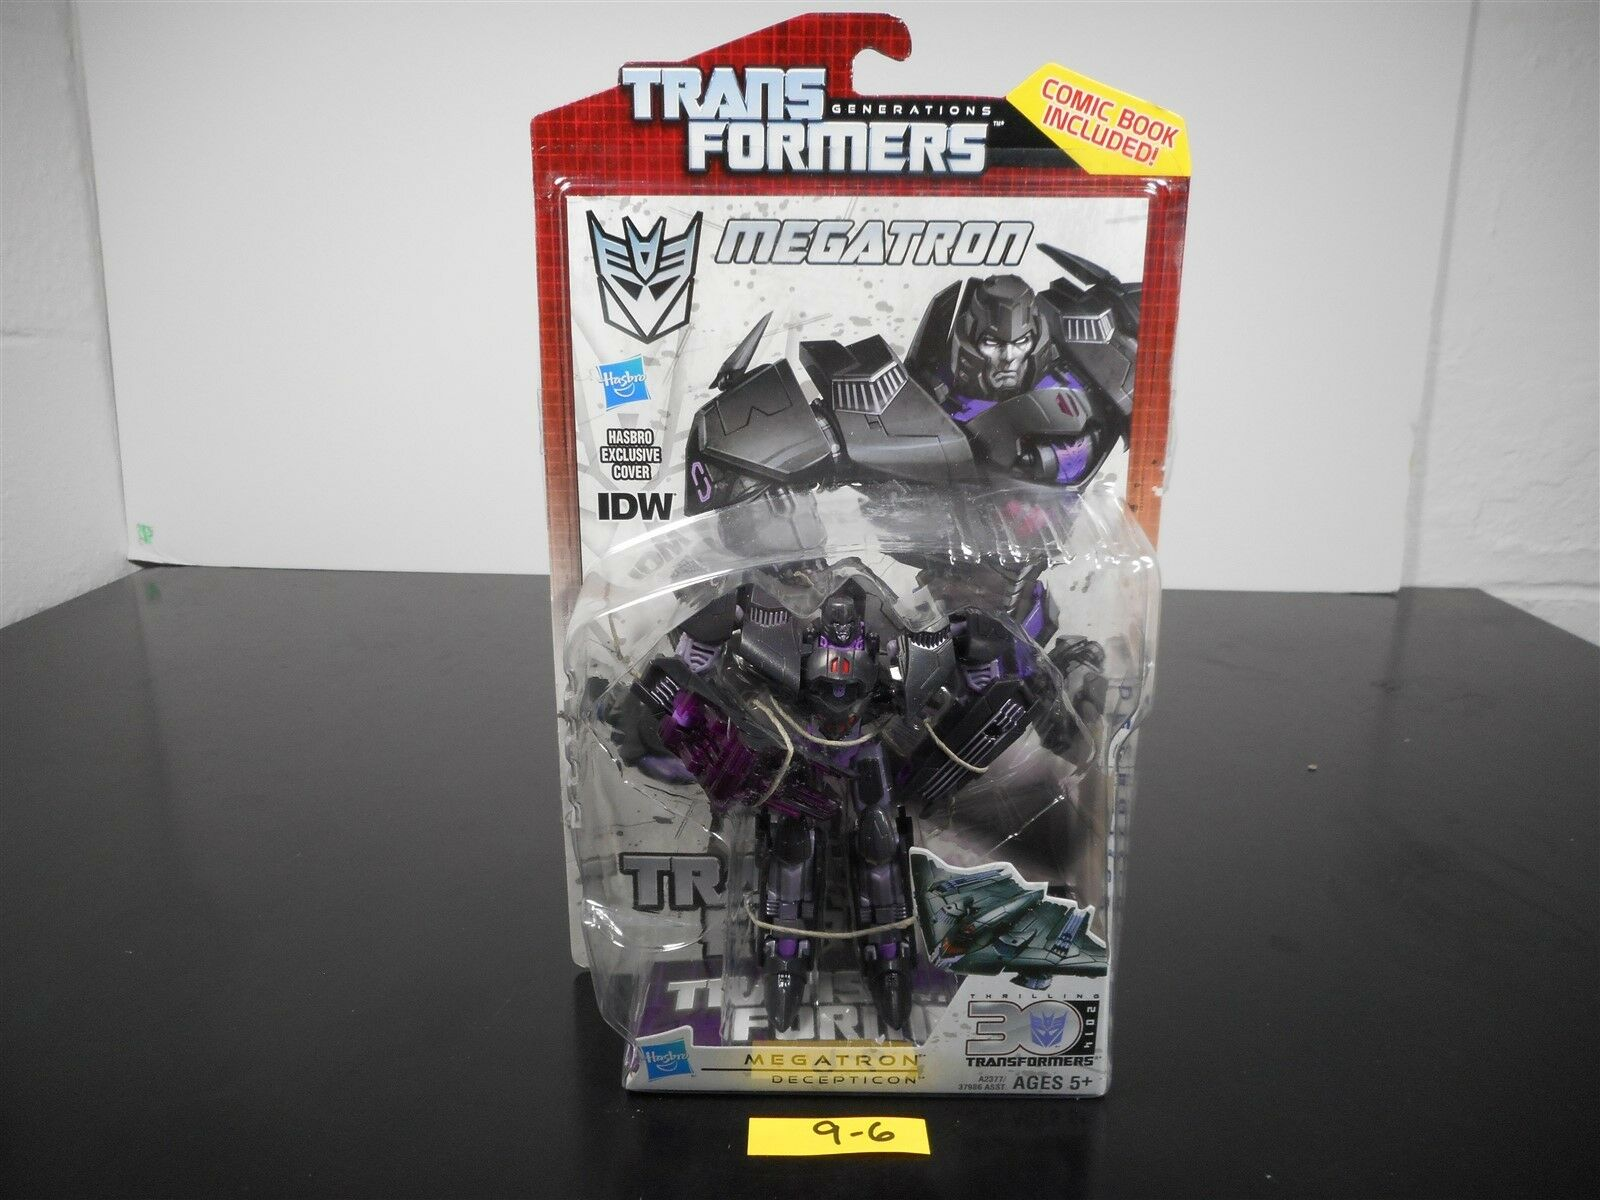 NEW & SEALED   TRANSFORMERS GENERATIONS IDW MEGATRON DELUXE FIGURE 30TH ANN 9-6